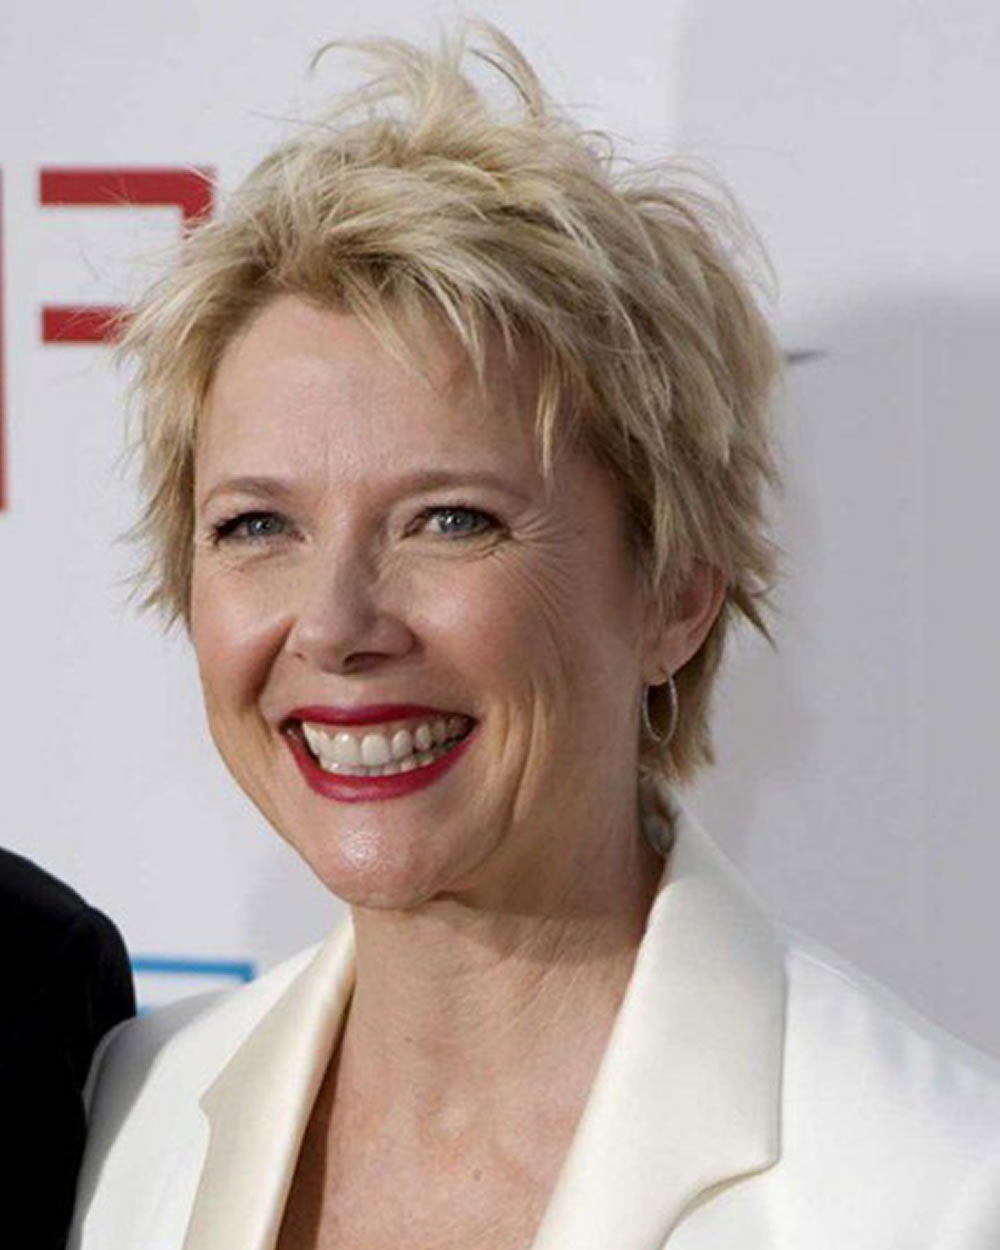 Pixie Short Haircuts For Older Women Over 50 & 2018 2019 Short Pertaining To Pixie Undercut Hairstyles For Women Over  (View 14 of 20)